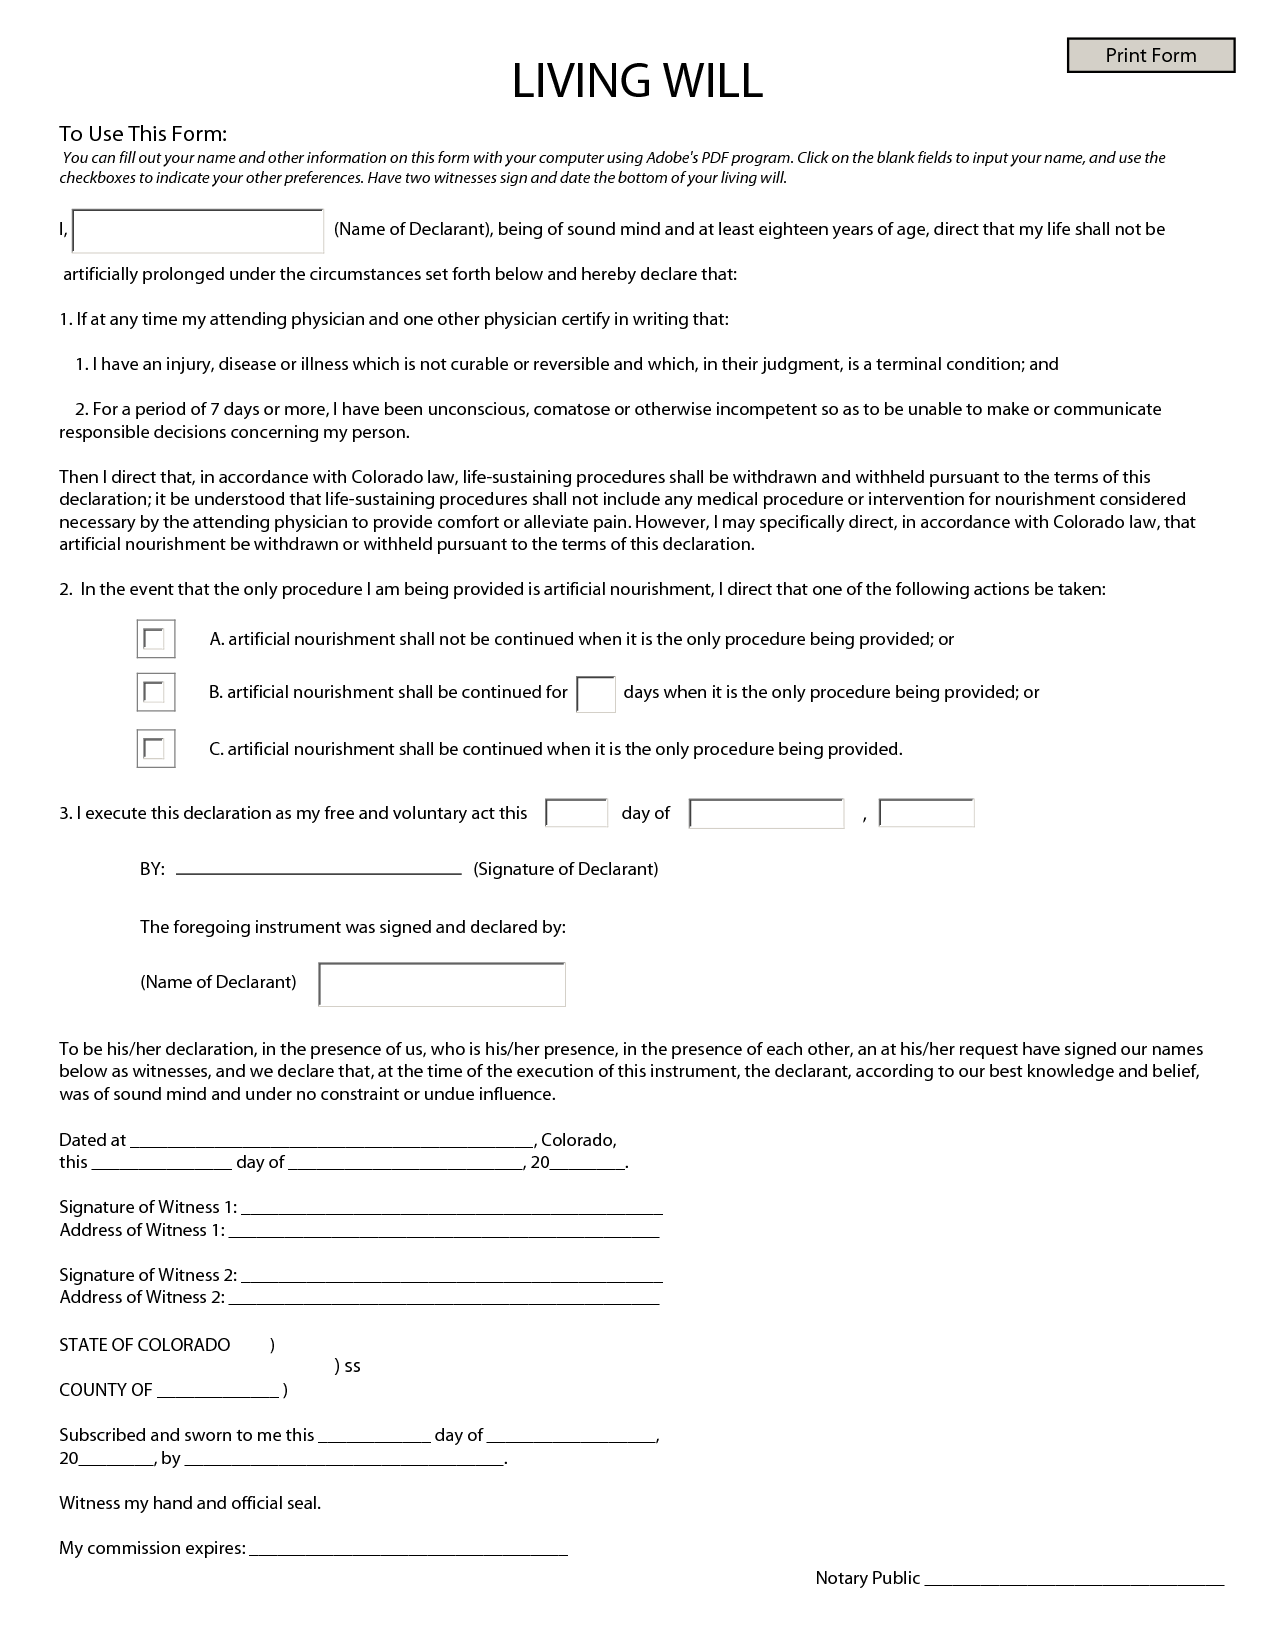 Last Will And Testament Blank Forms   Fill Online, Printable